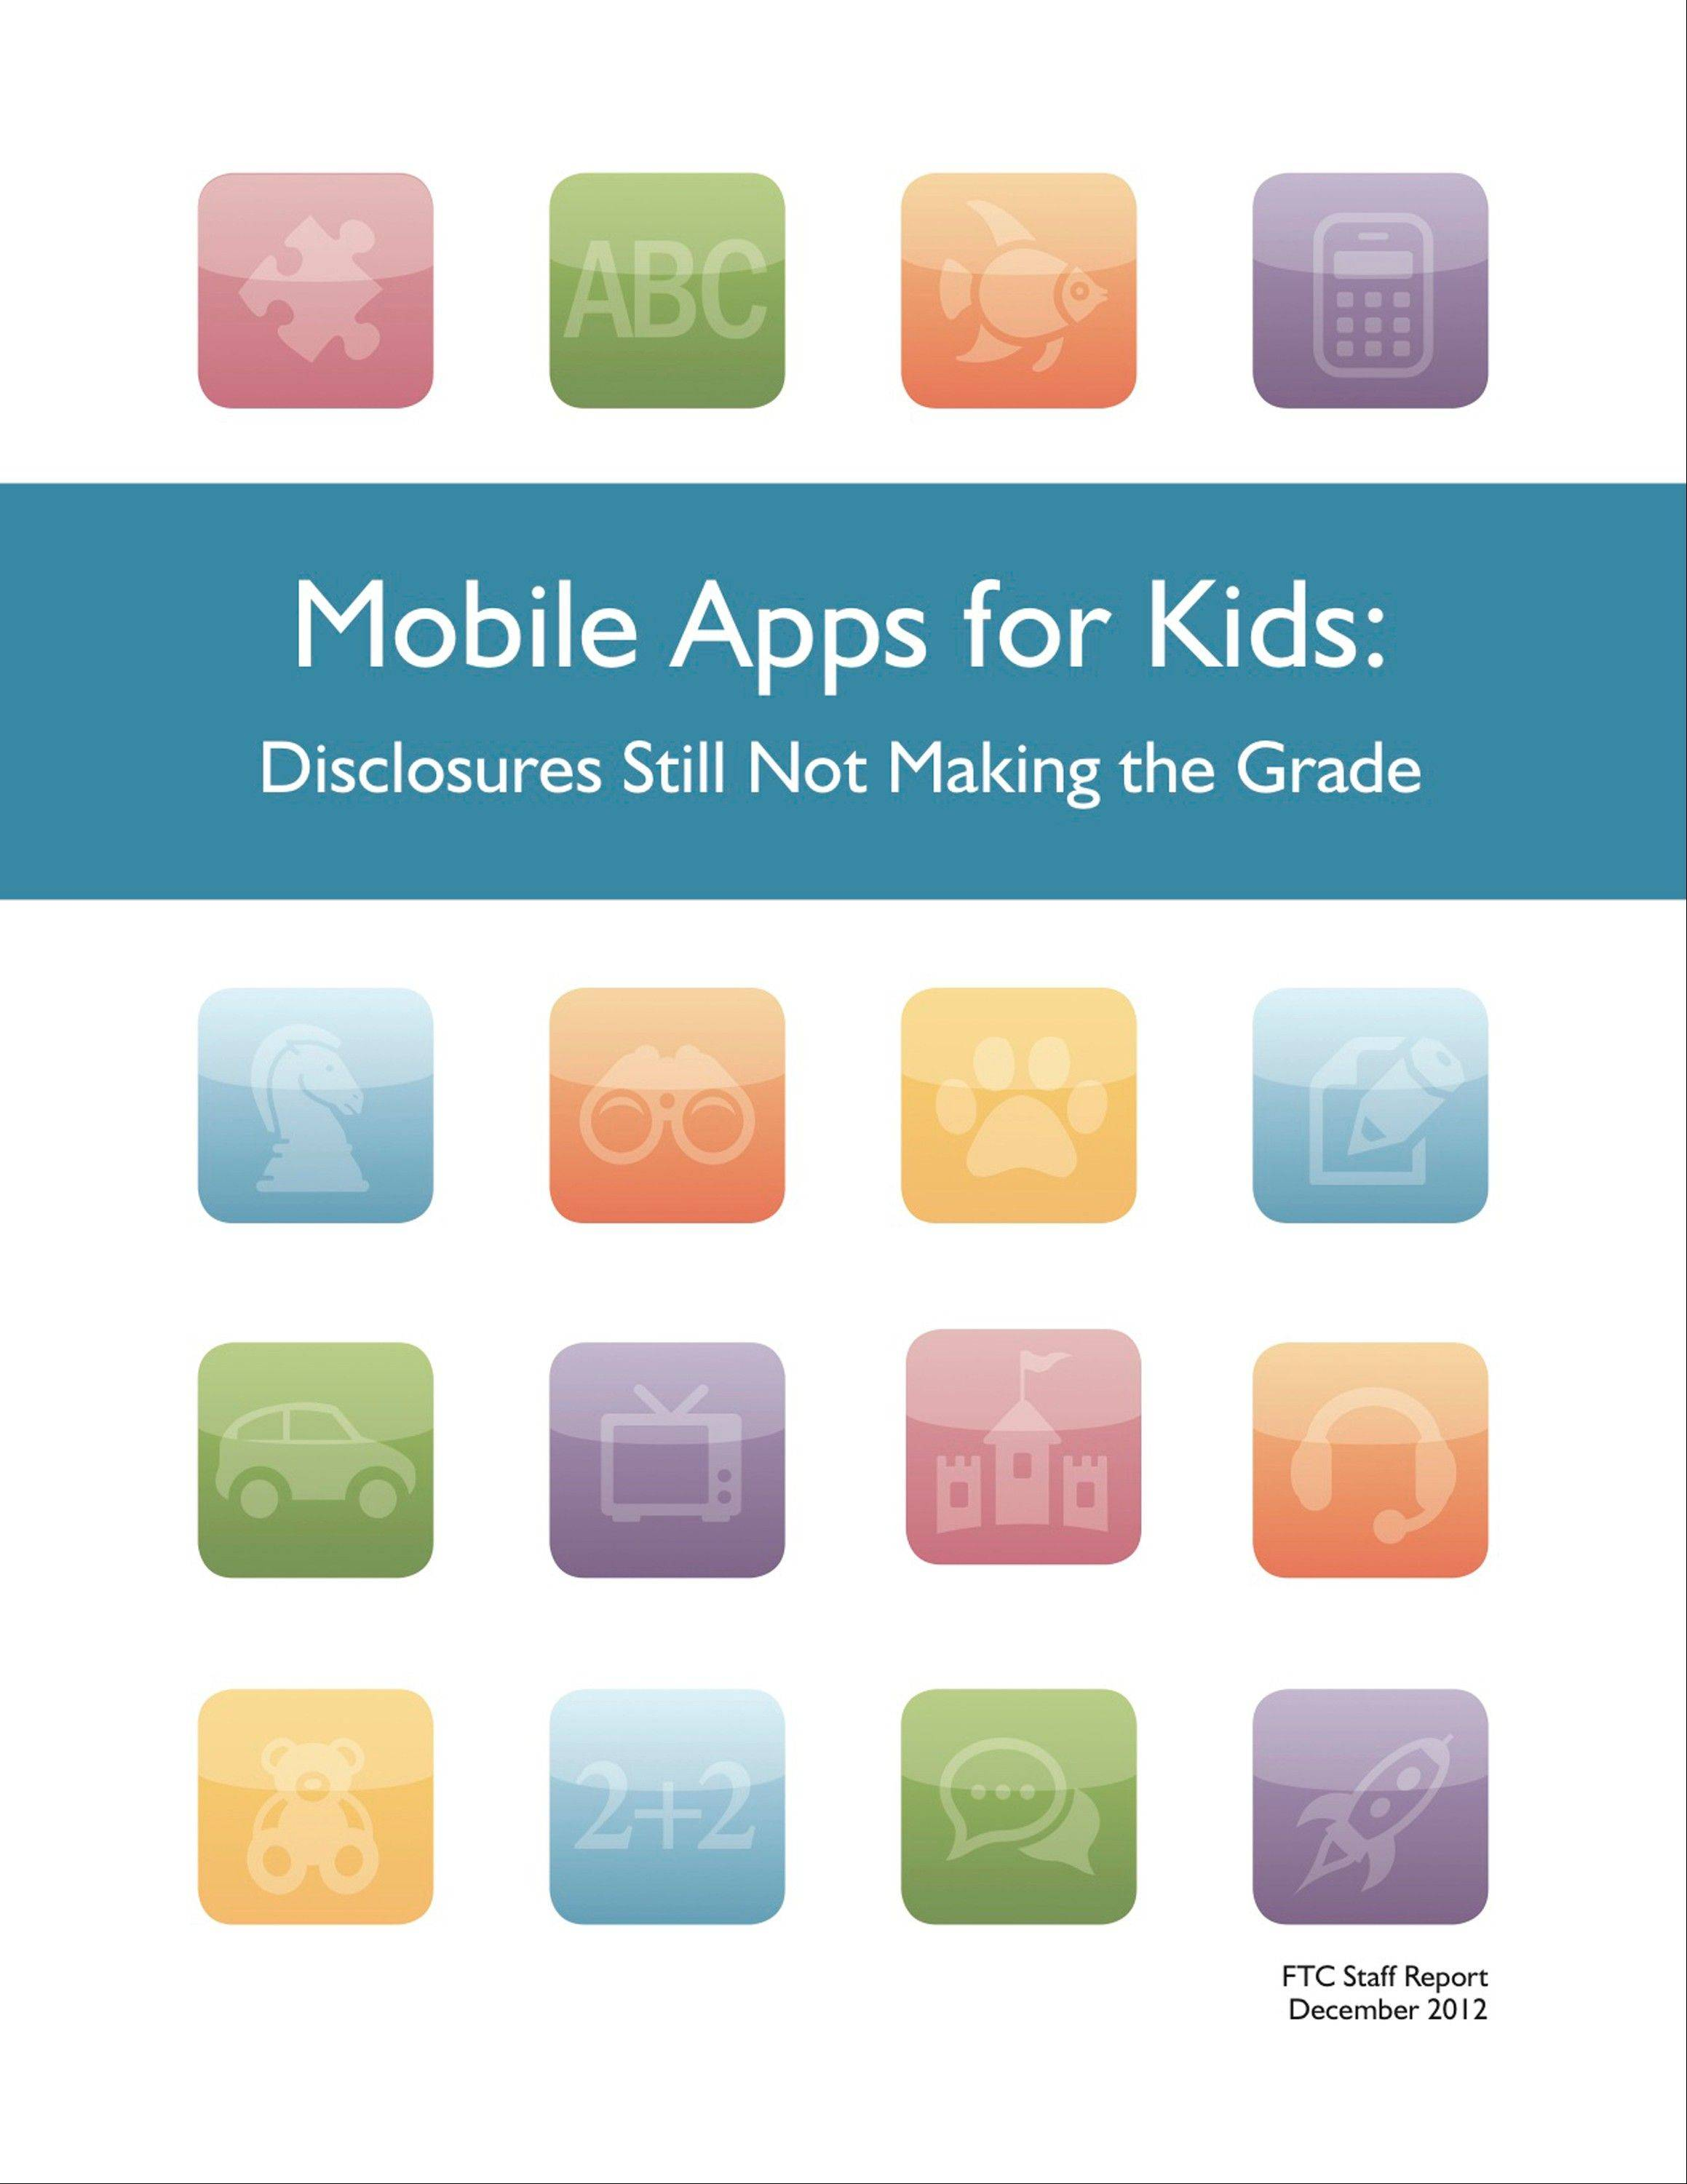 This is the Federal Trade Commission�s �Mobile Apps for Kids: Disclosures Still Not Making the Grade� guide. The Federal Trade Commission is investigating an unspecified number of software companies that make cellphone apps to determine whether they have violated the privacy rights of children by quietly collecting personal information from their phones then sharing it with advertisers and data brokers.